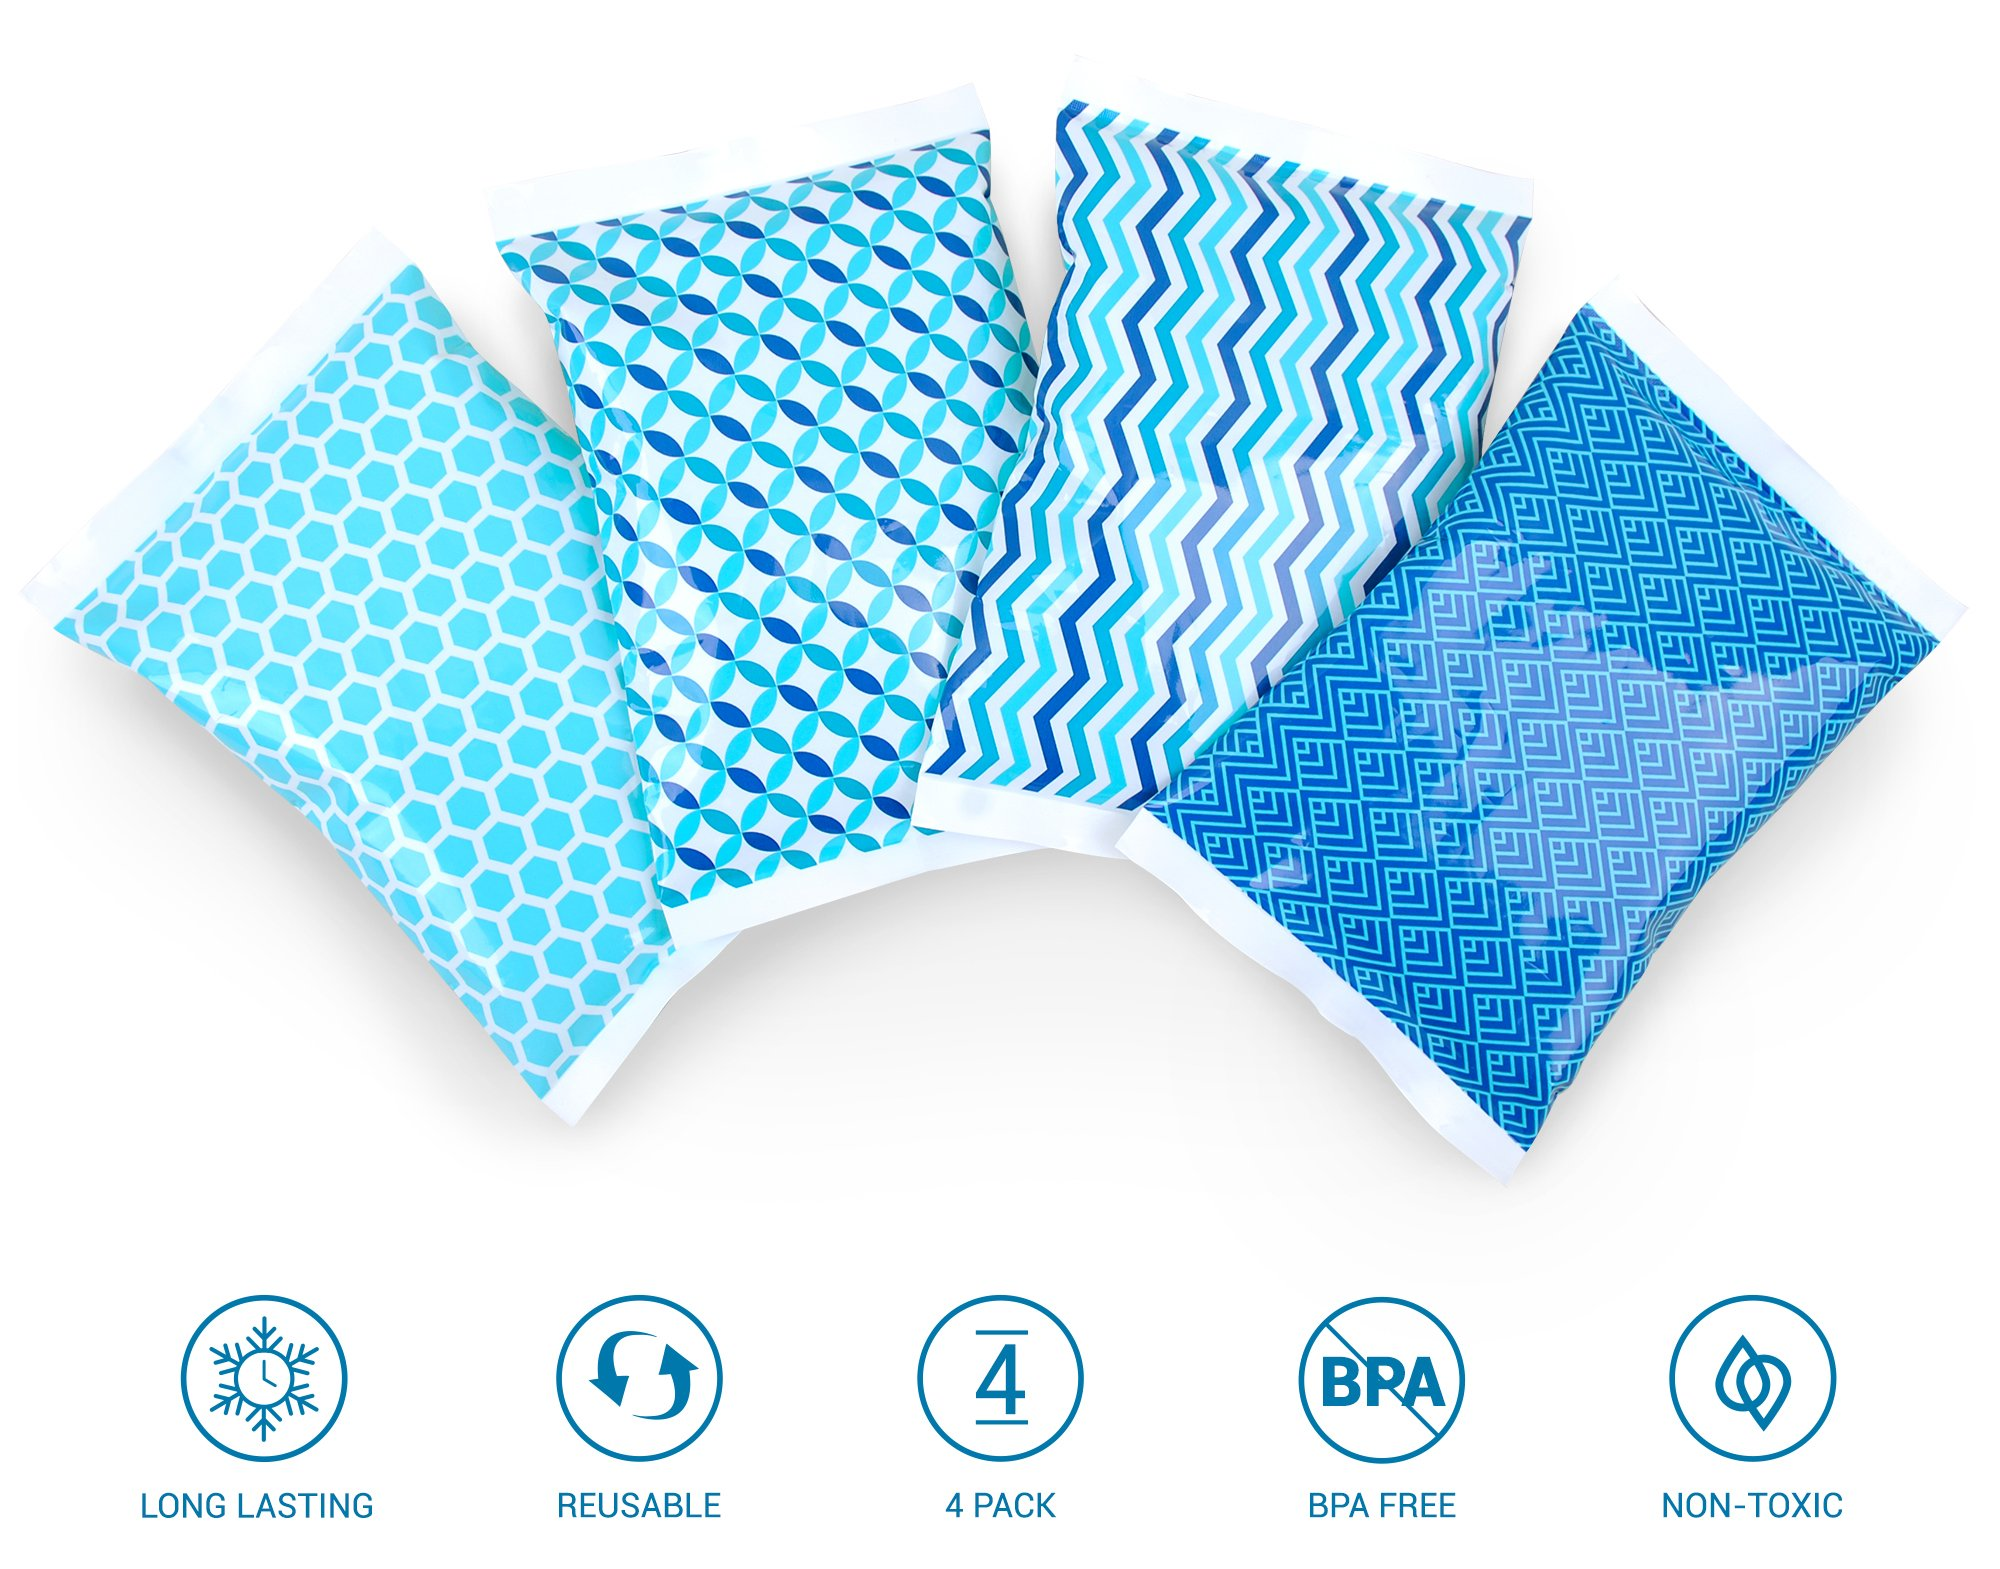 Ice Pack for Lunch Boxes - 4 Reusable Packs - Keeps Food Cold – Cool Print Bag Designs - Great for Kids or Adults Lunchbox and Cooler by Thrive (Image #3)